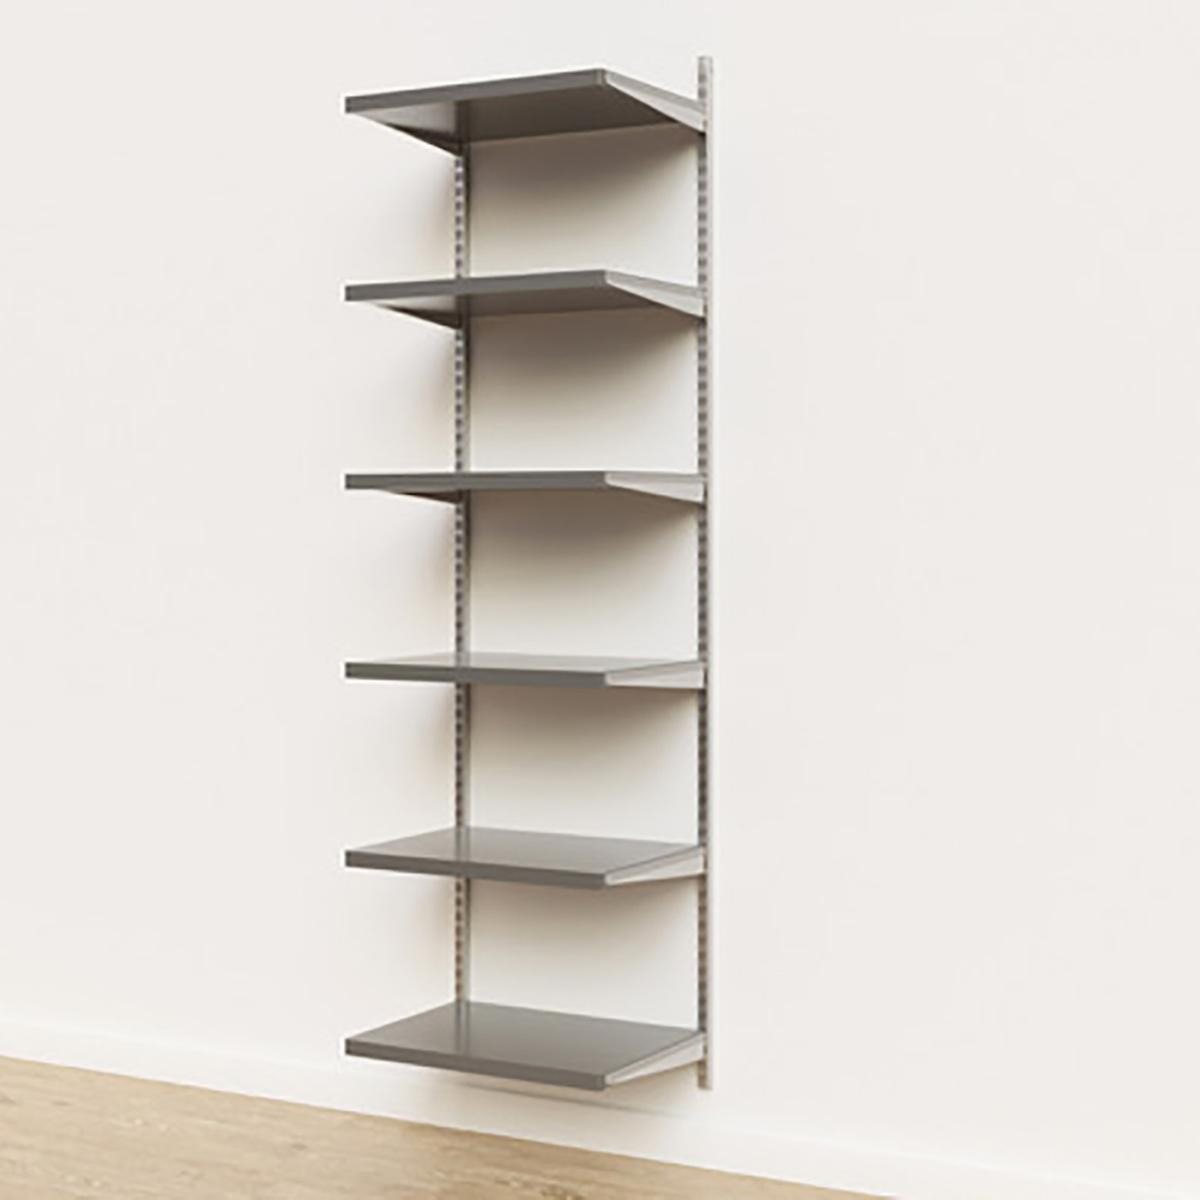 Elfa Décor 2'  Platinum & Grey Basic Shelving Units for Anywhere